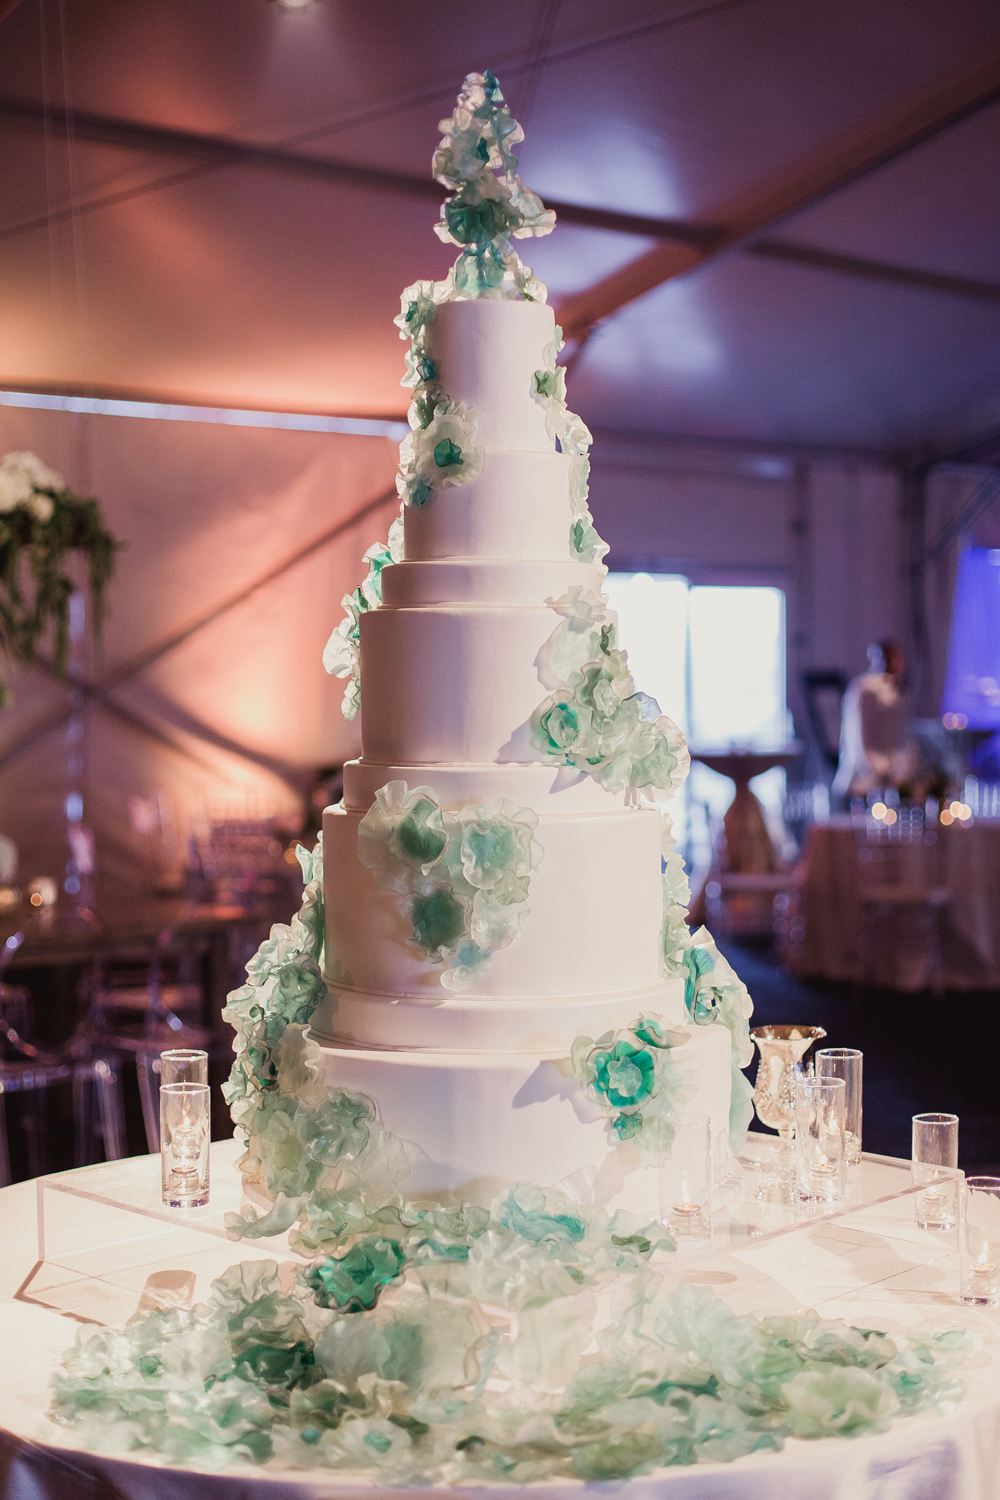 Wedding Cake Ideas: Nontraditional Wedding Cake Decorations and ...